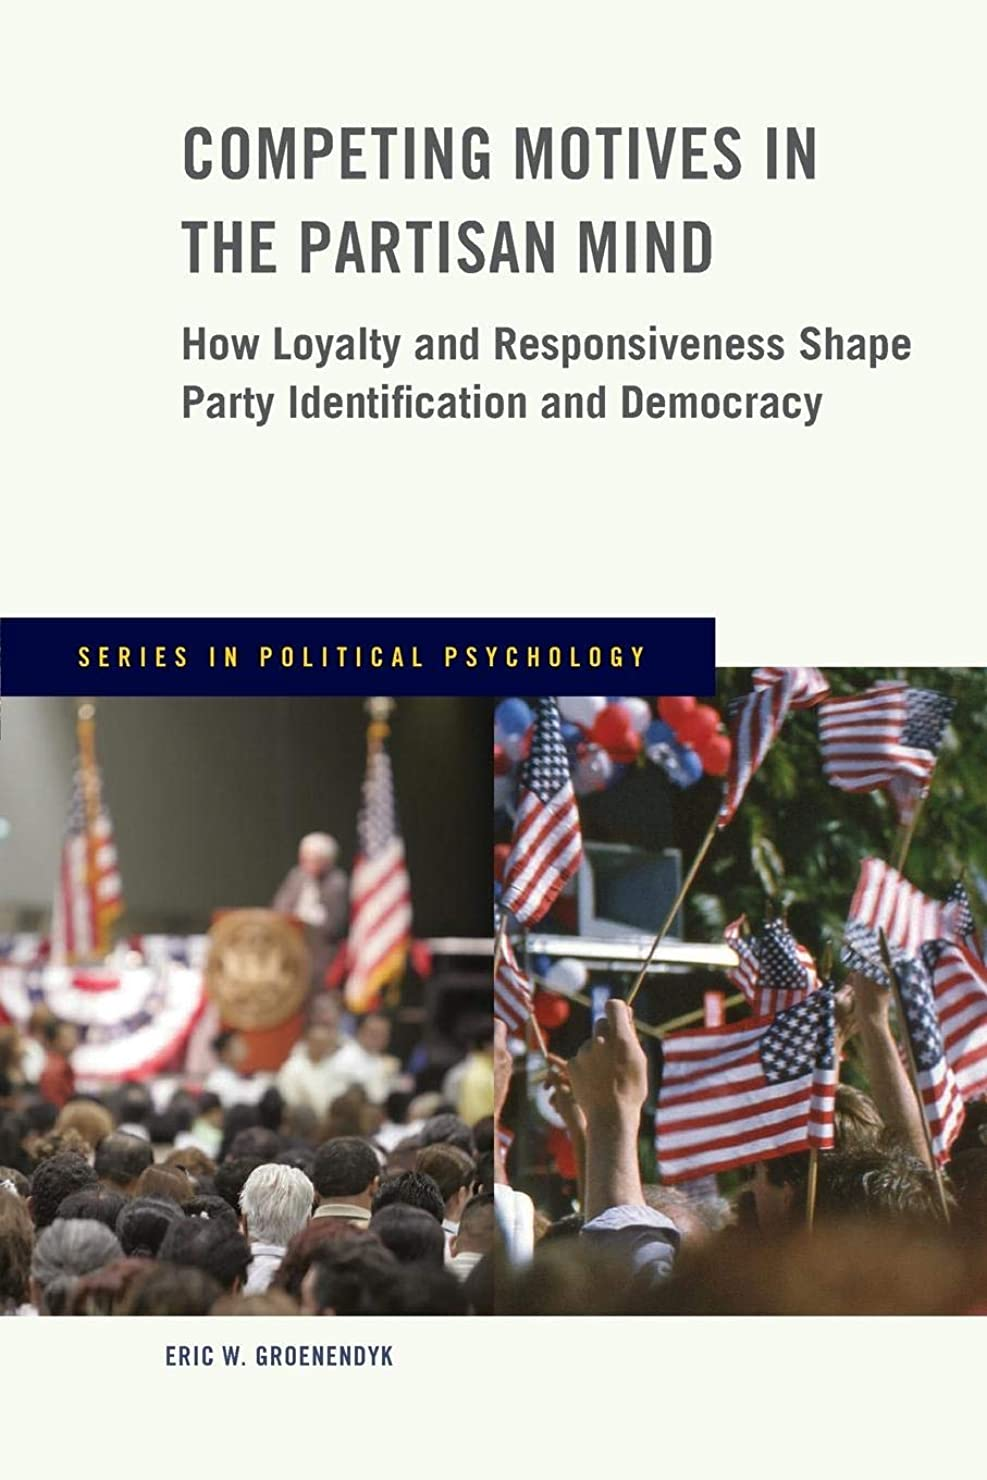 謎めいた先祖穀物Competing Motives in the Partisan Mind: How Loyalty and Responsiveness Shape Party Identification and Democracy (Political Psychology)